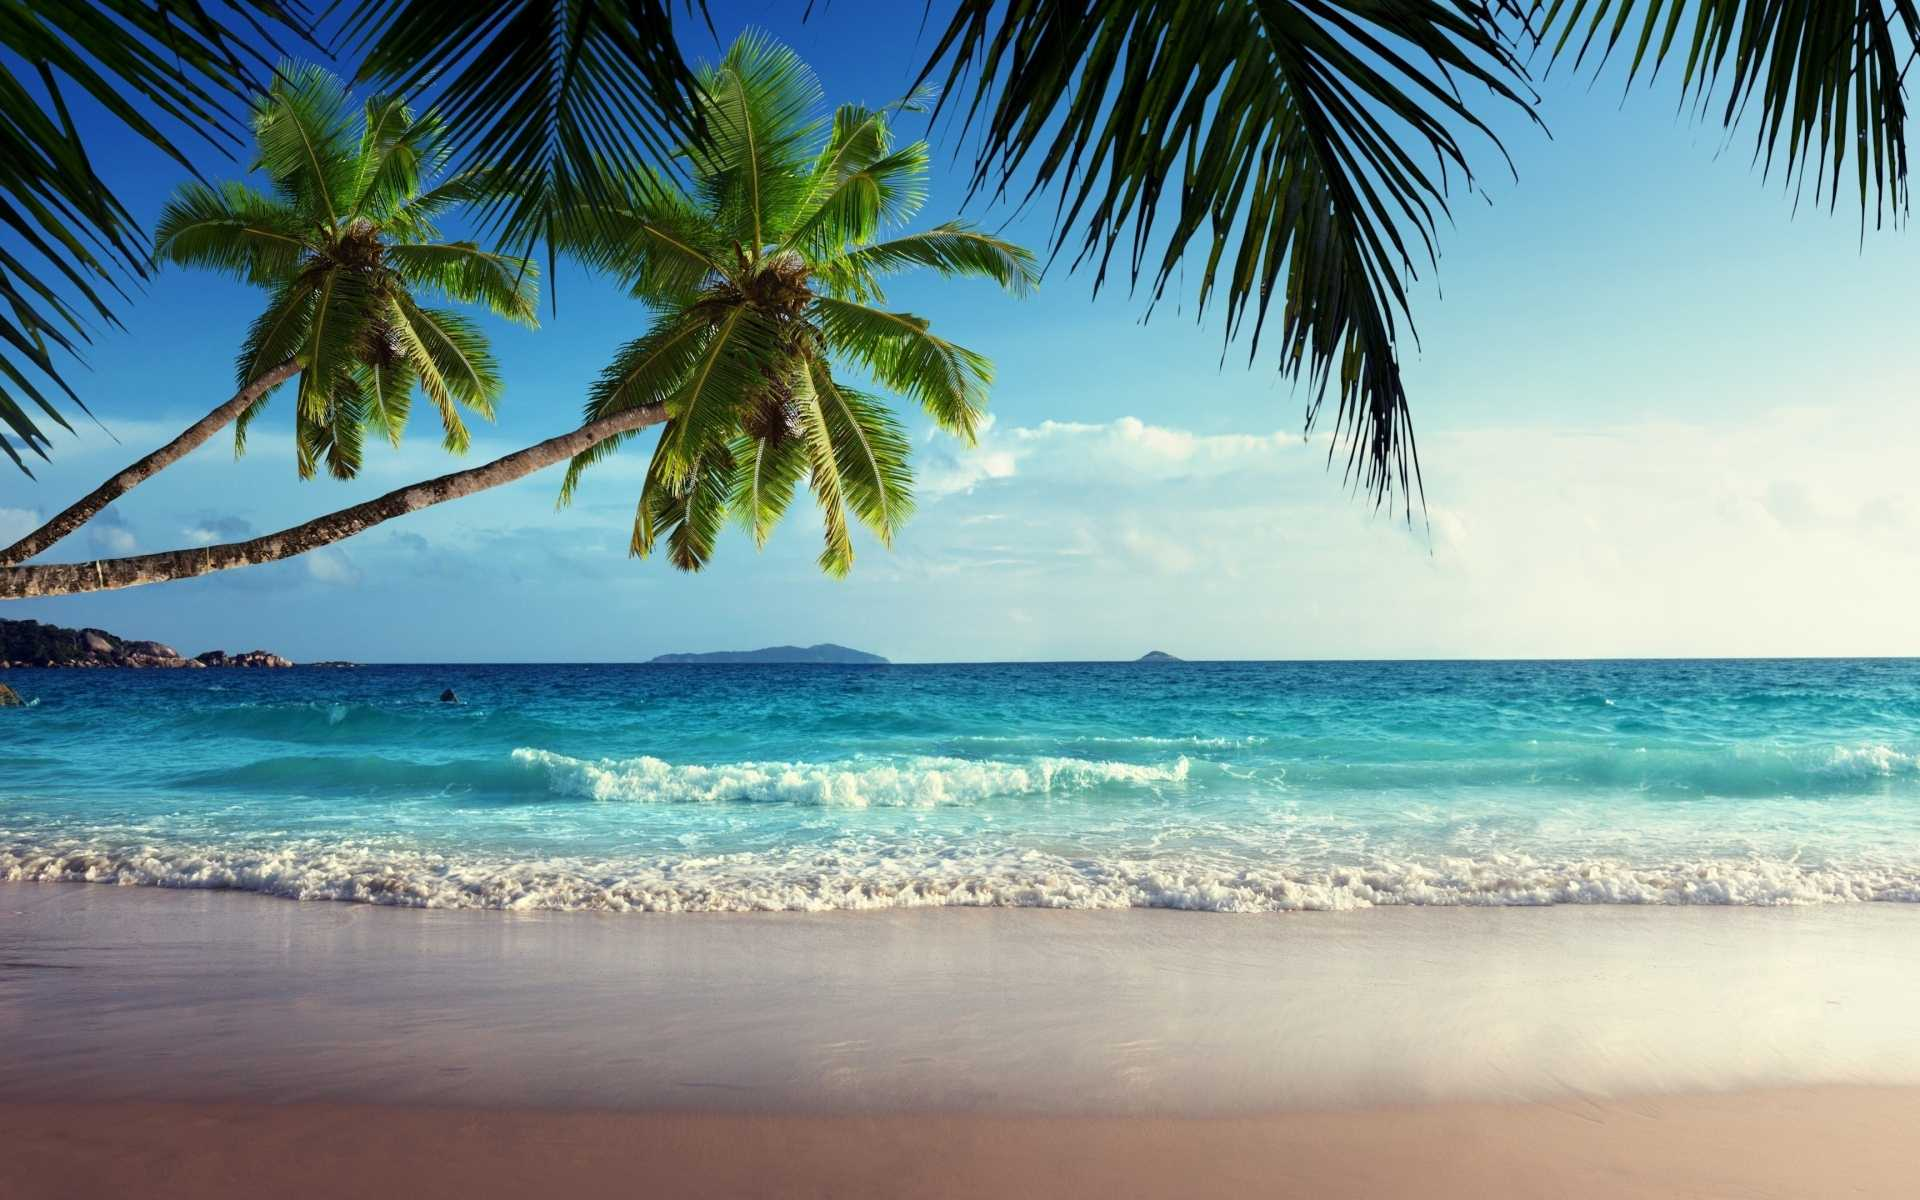 Tropical Beach Landscape Wallpapers